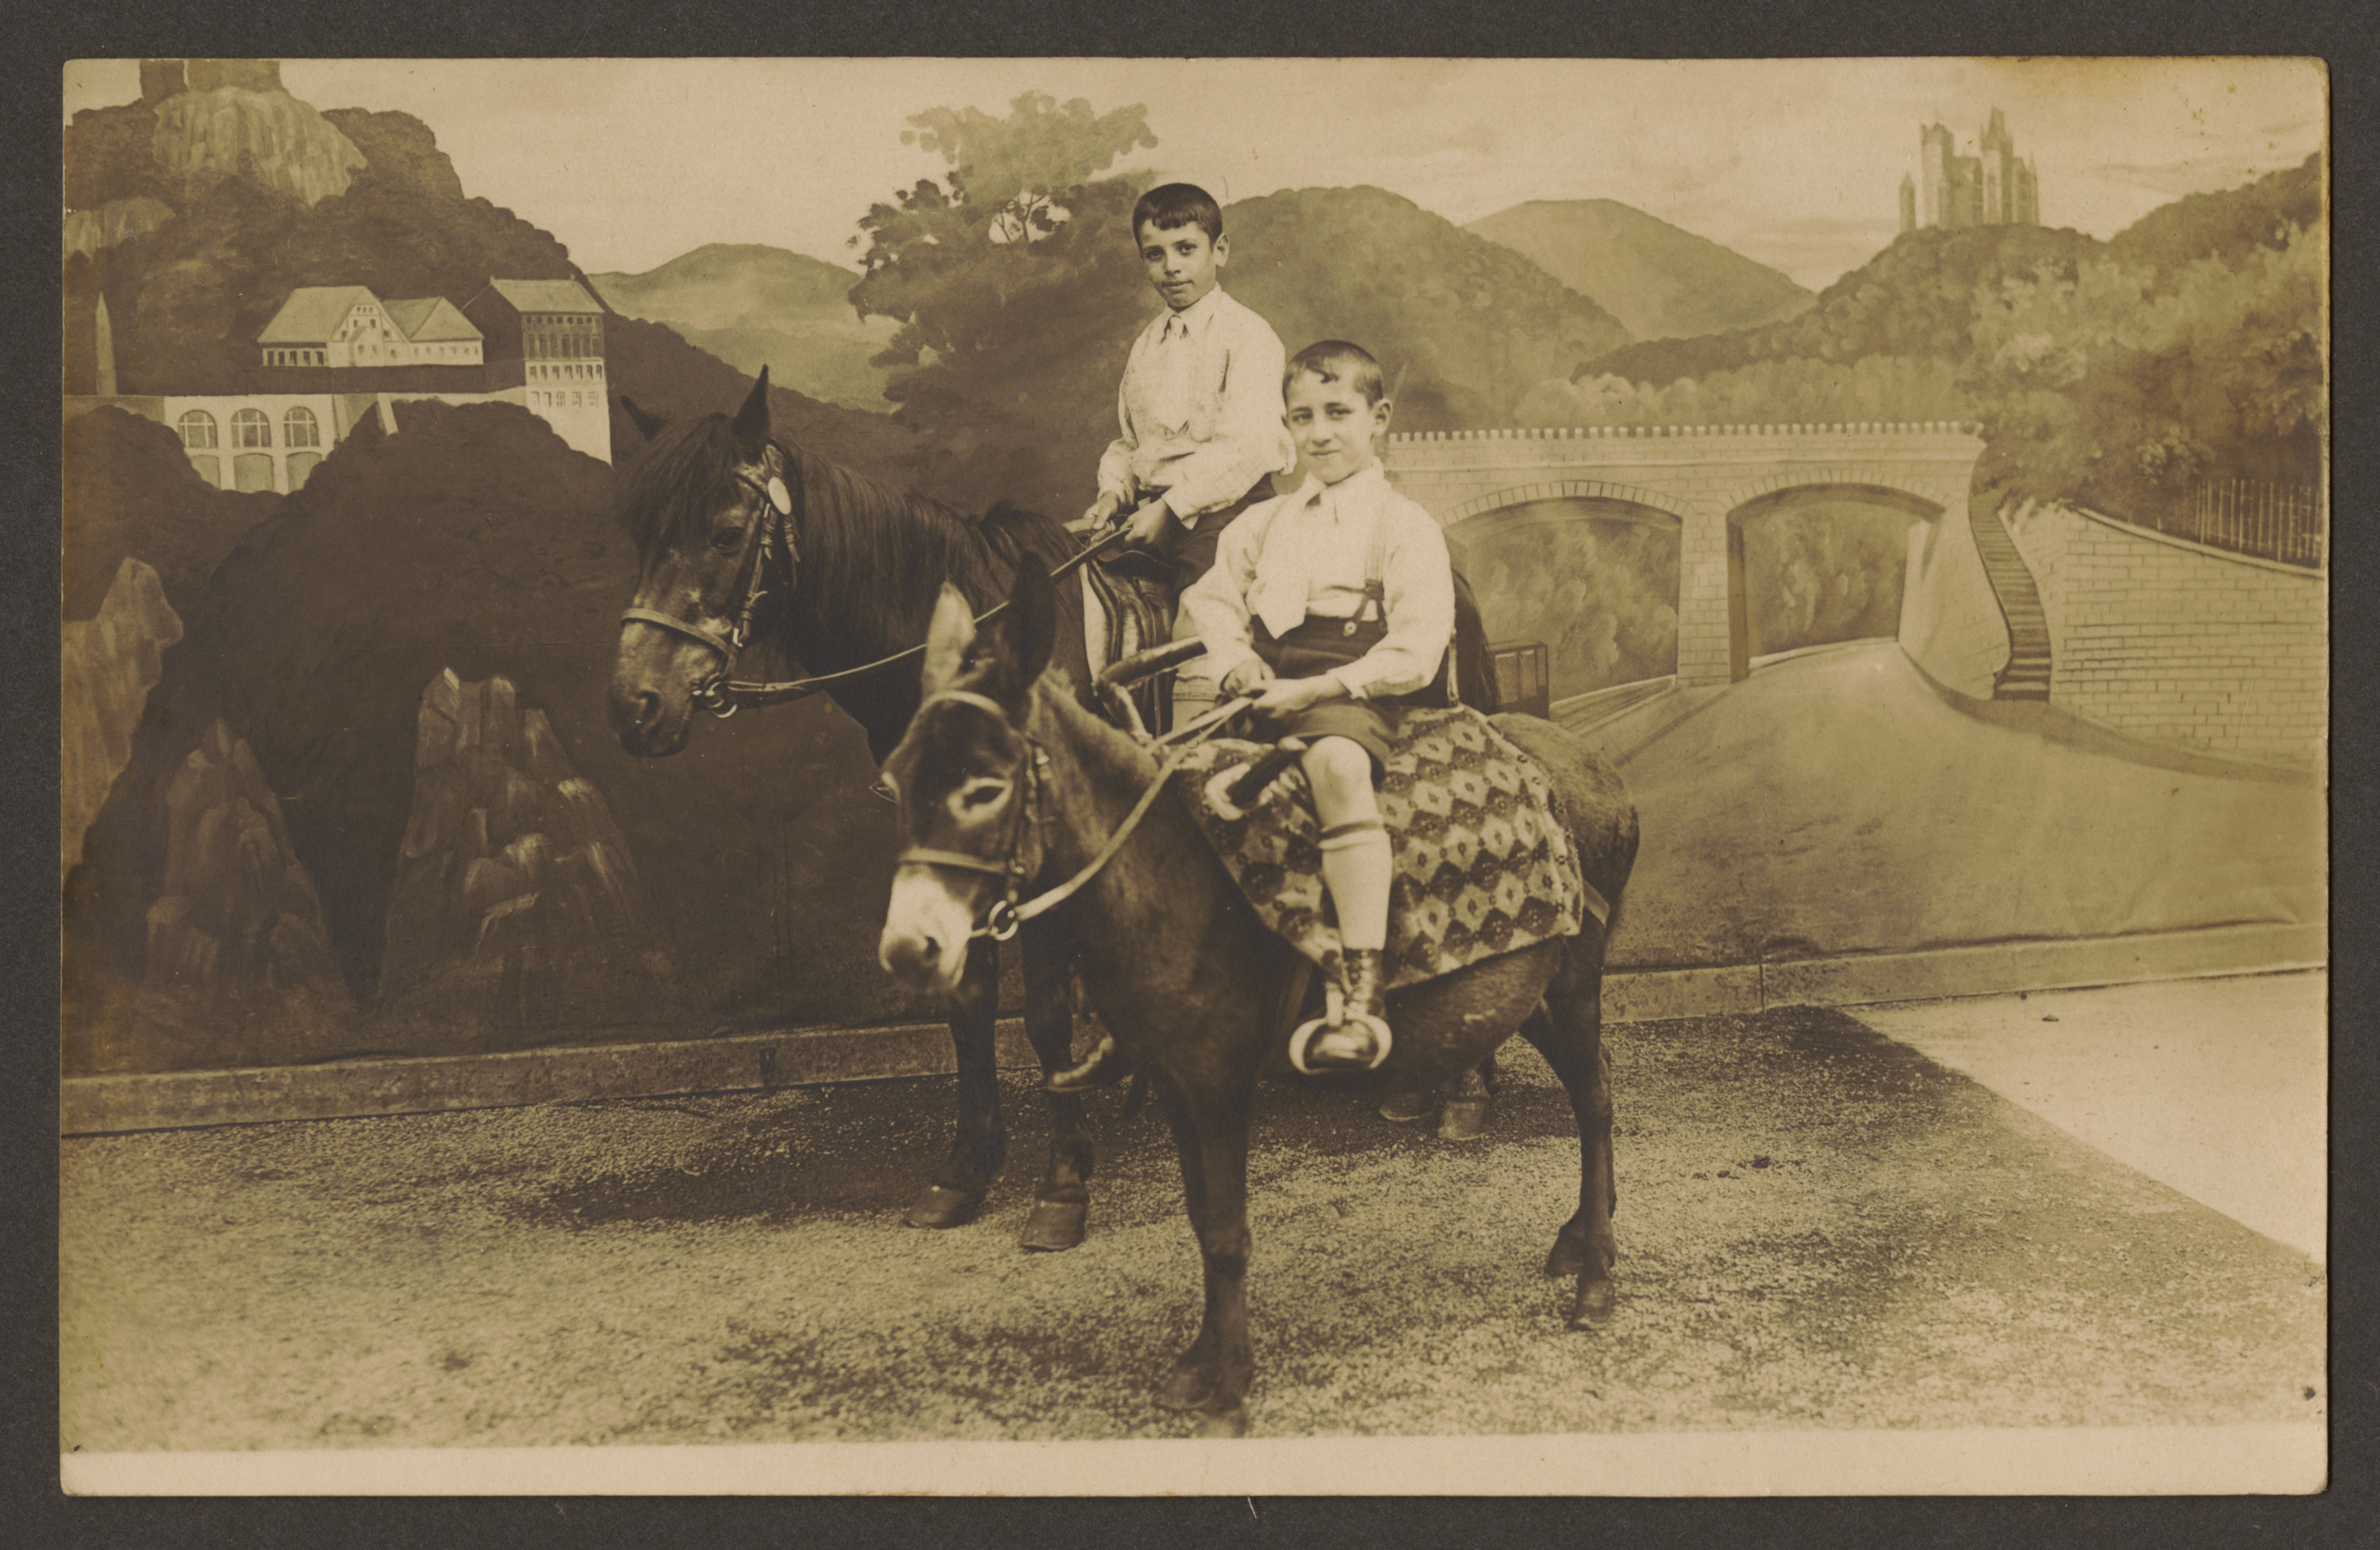 Brothers Helmut and Erich Rosendahl (front) pose for a photograph seated on a horse and a donkey, while on a visit to Mt. Drachenfels.